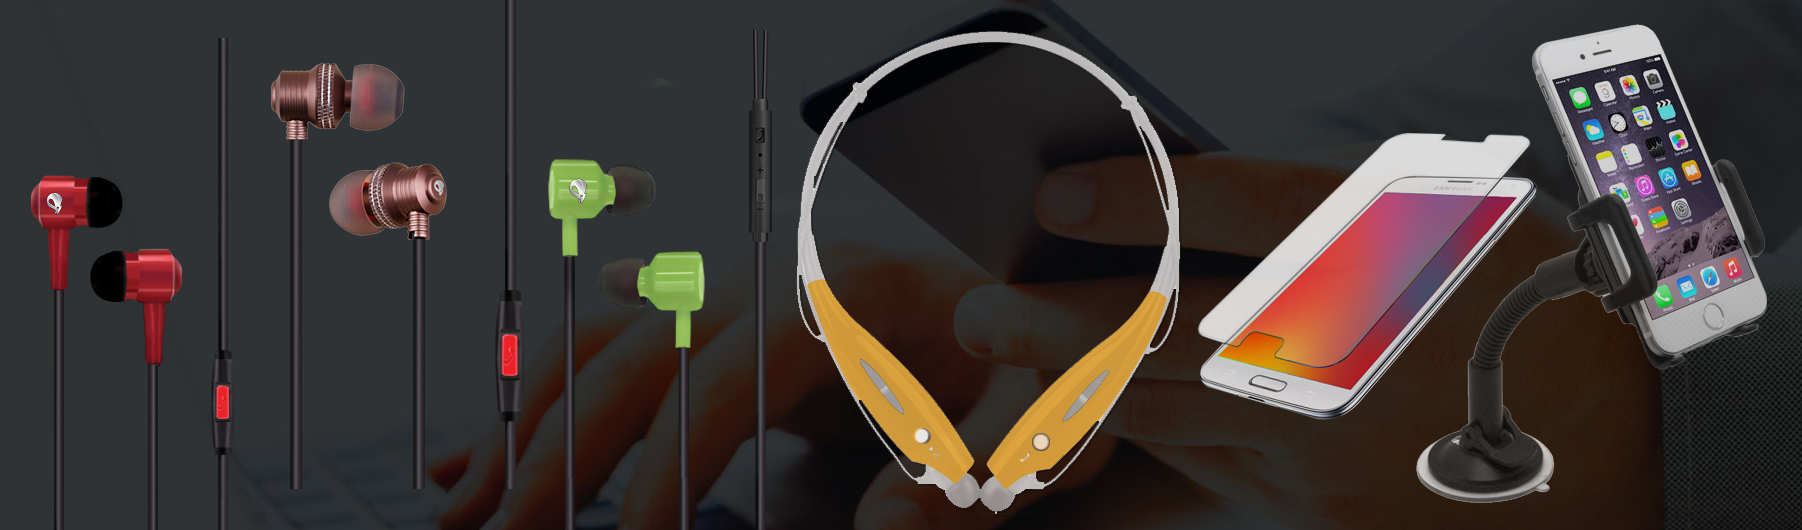 Spider USA – Best Earbuds You Ever Owned